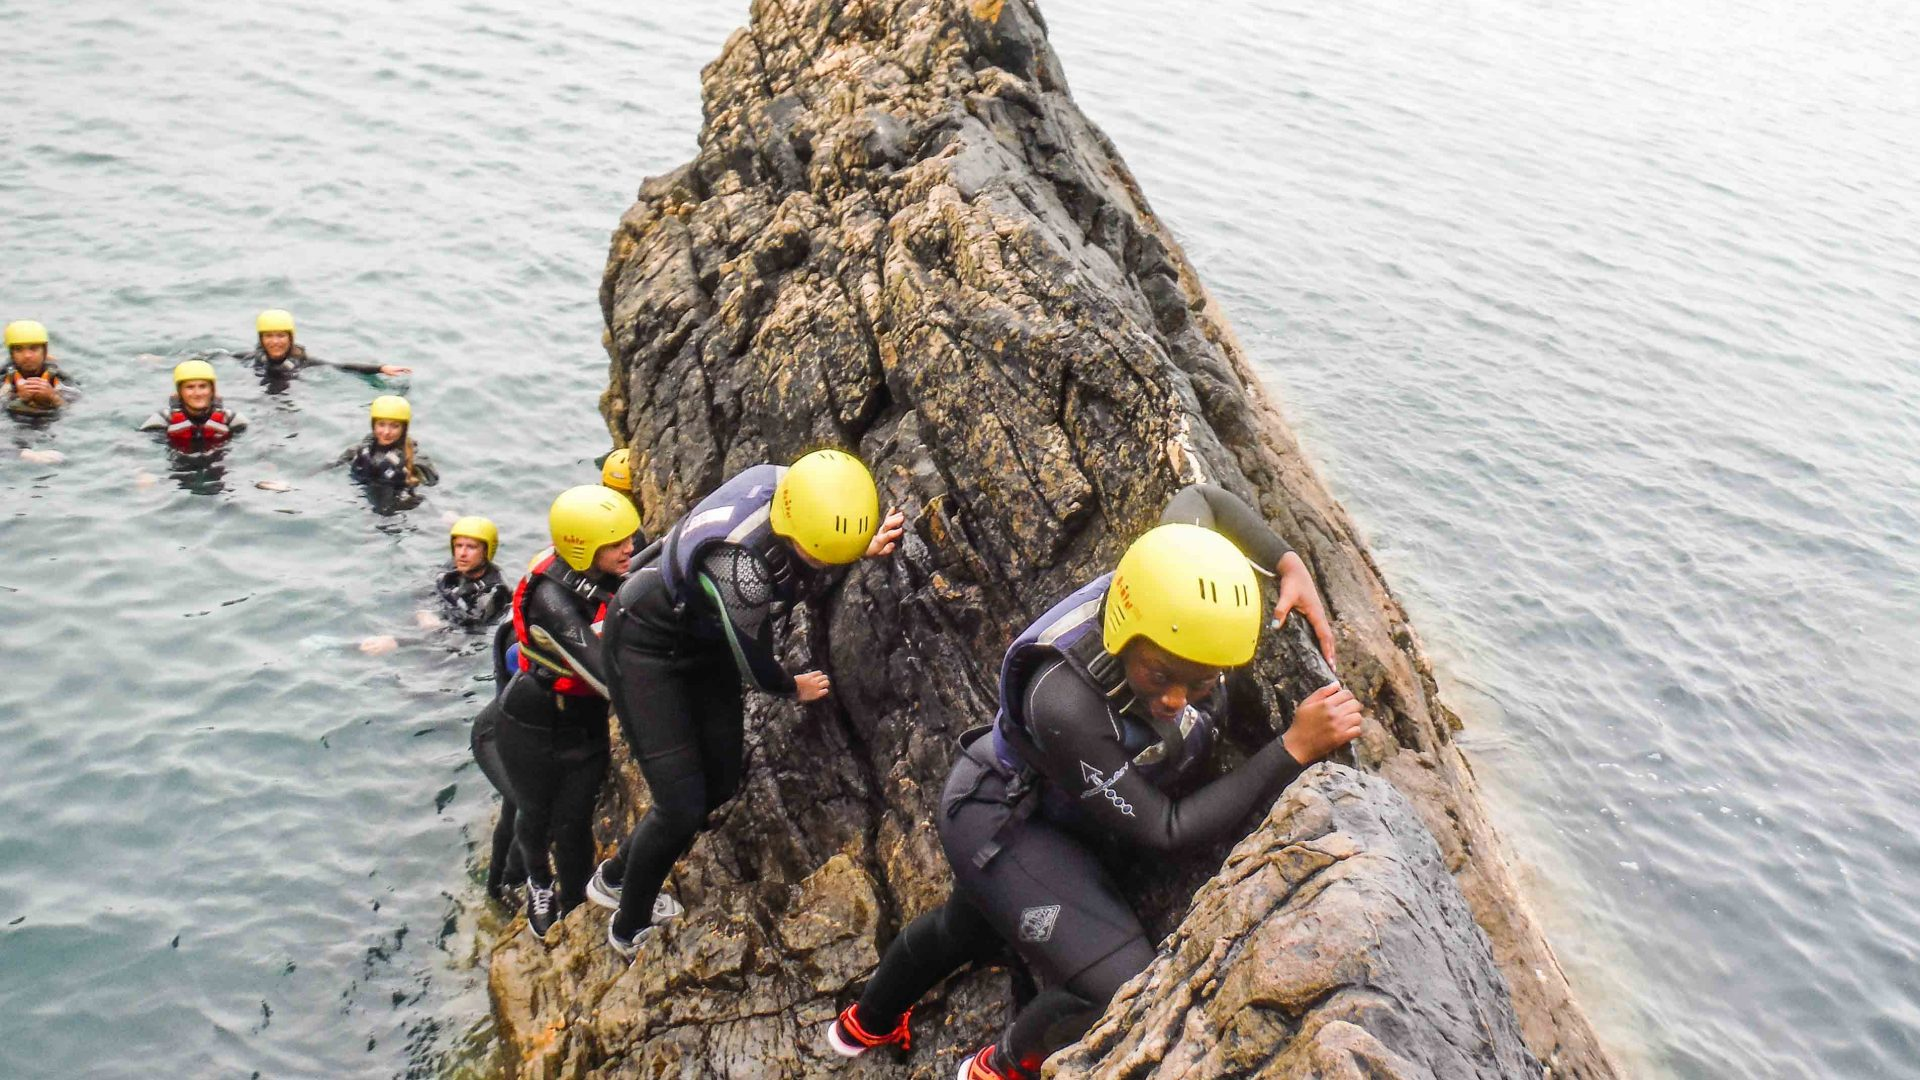 Clients make their way carefully up a rocky ledge on this coasteering adventure.